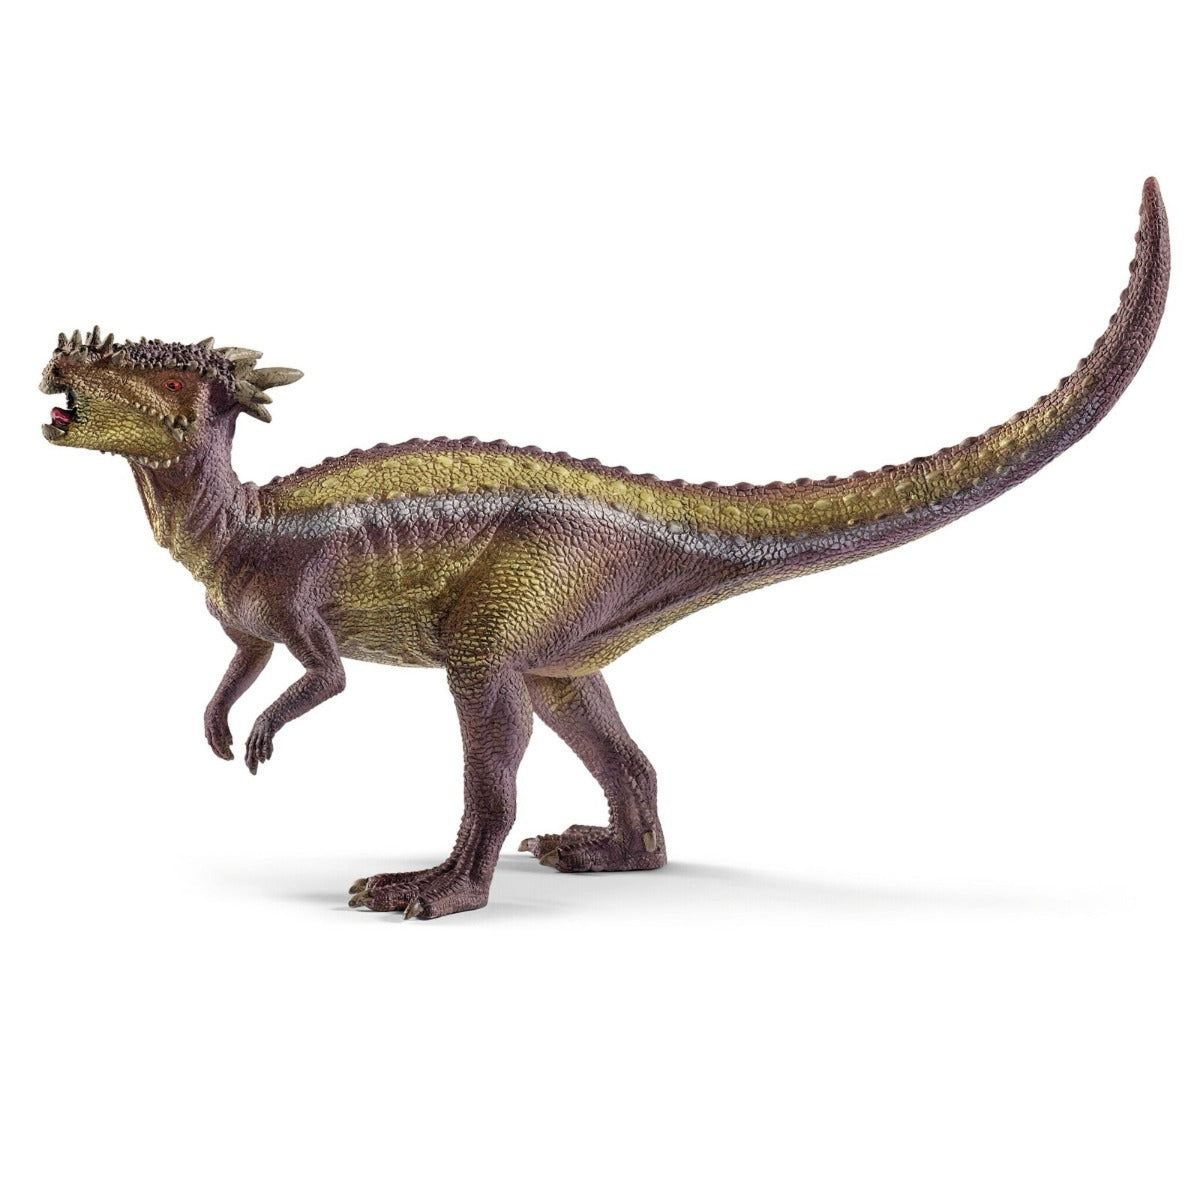 Schleich Dracorex dinosaur at Little Sprout